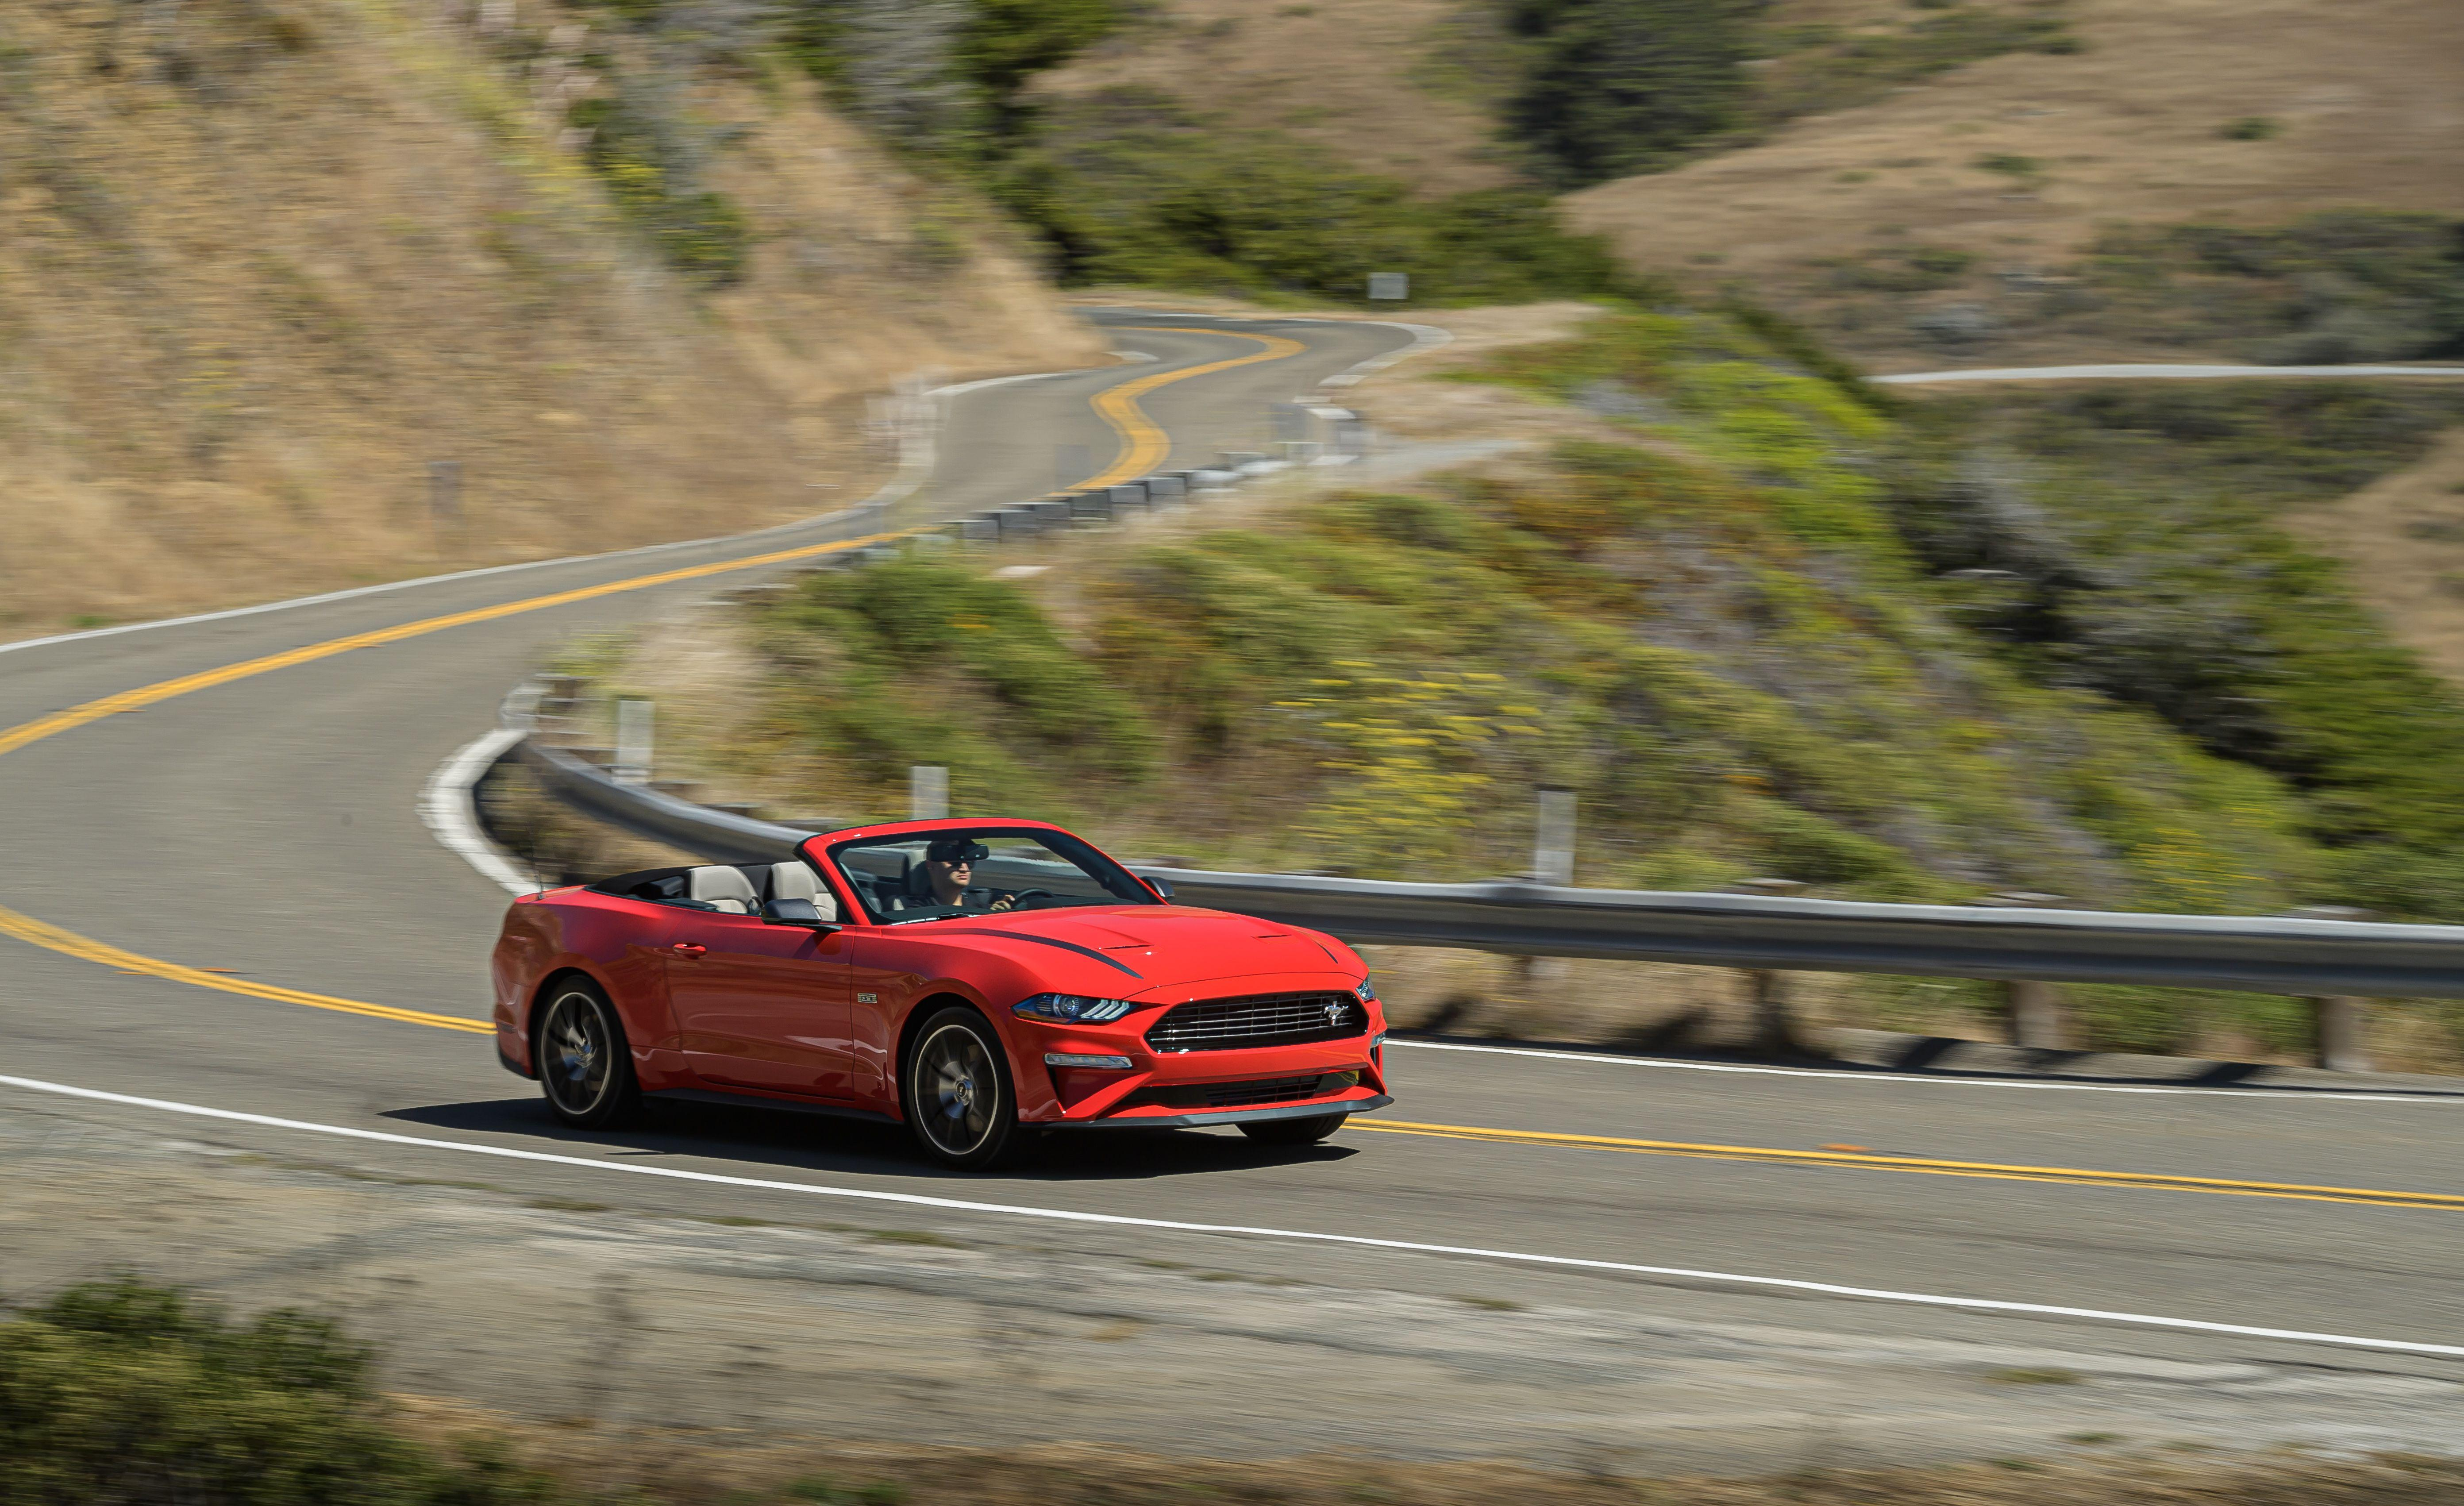 """<p>The 2020 Ford Mustang EcoBoost's optional High Performance and Handling packages help transform the four-banger models into a more powerful and better-handling pony car. Read the full story <a href=""""https://www.caranddriver.com/reviews/a29145957/2020-ford-mustang-ecoboost-high-performance-drive/"""" rel=""""nofollow noopener"""" target=""""_blank"""" data-ylk=""""slk:here"""" class=""""link rapid-noclick-resp"""">here</a>.</p>"""